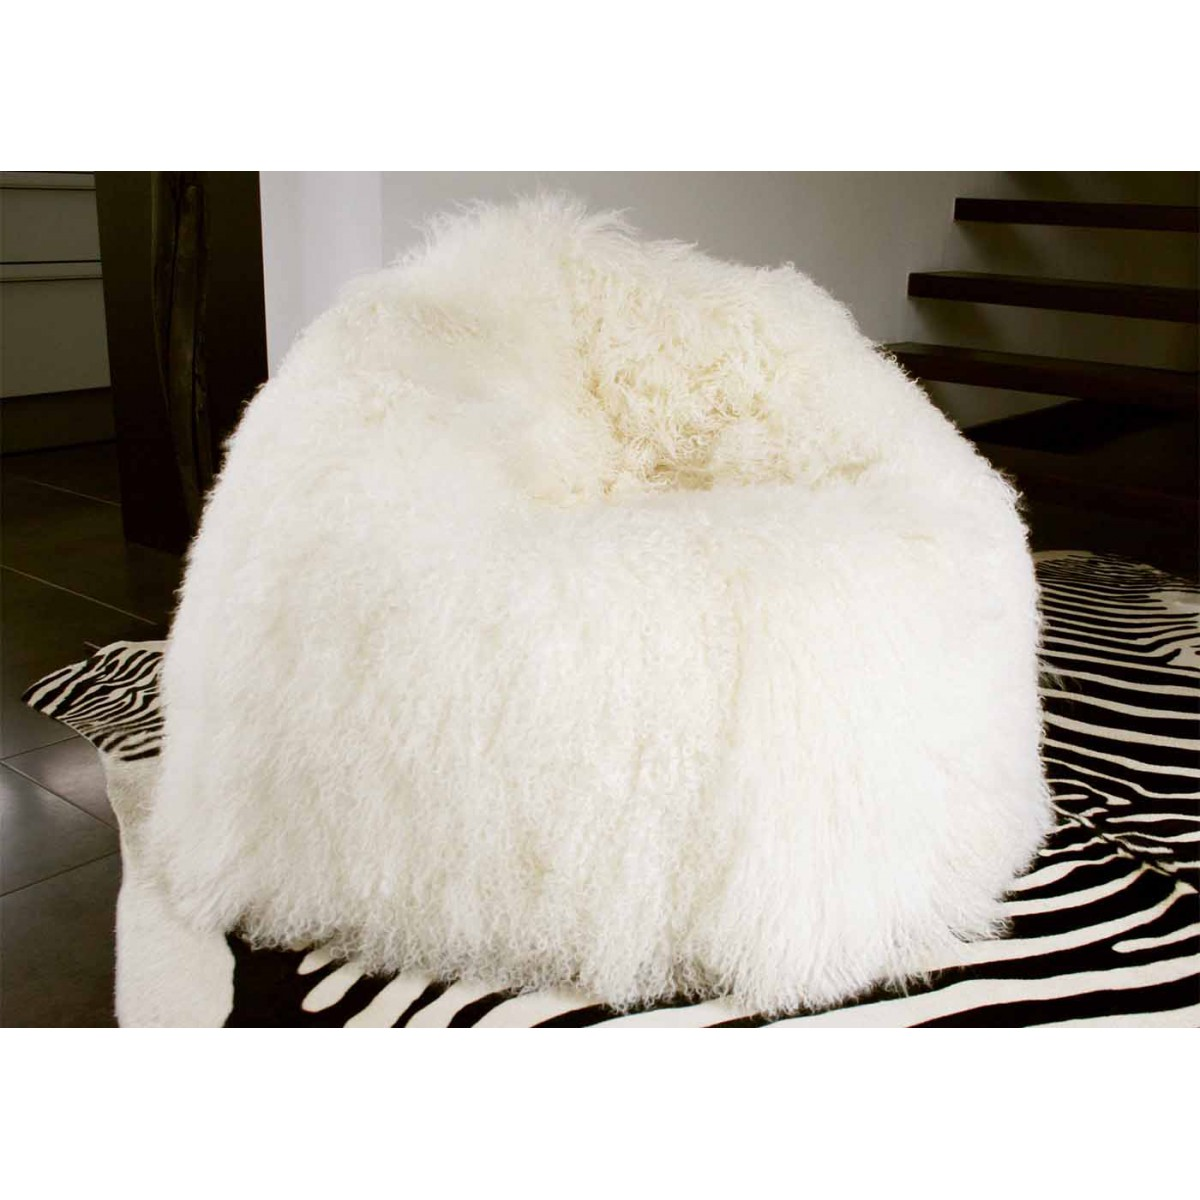 pouf xxl en peau de mouton hannibal sign angel des montagnes. Black Bedroom Furniture Sets. Home Design Ideas